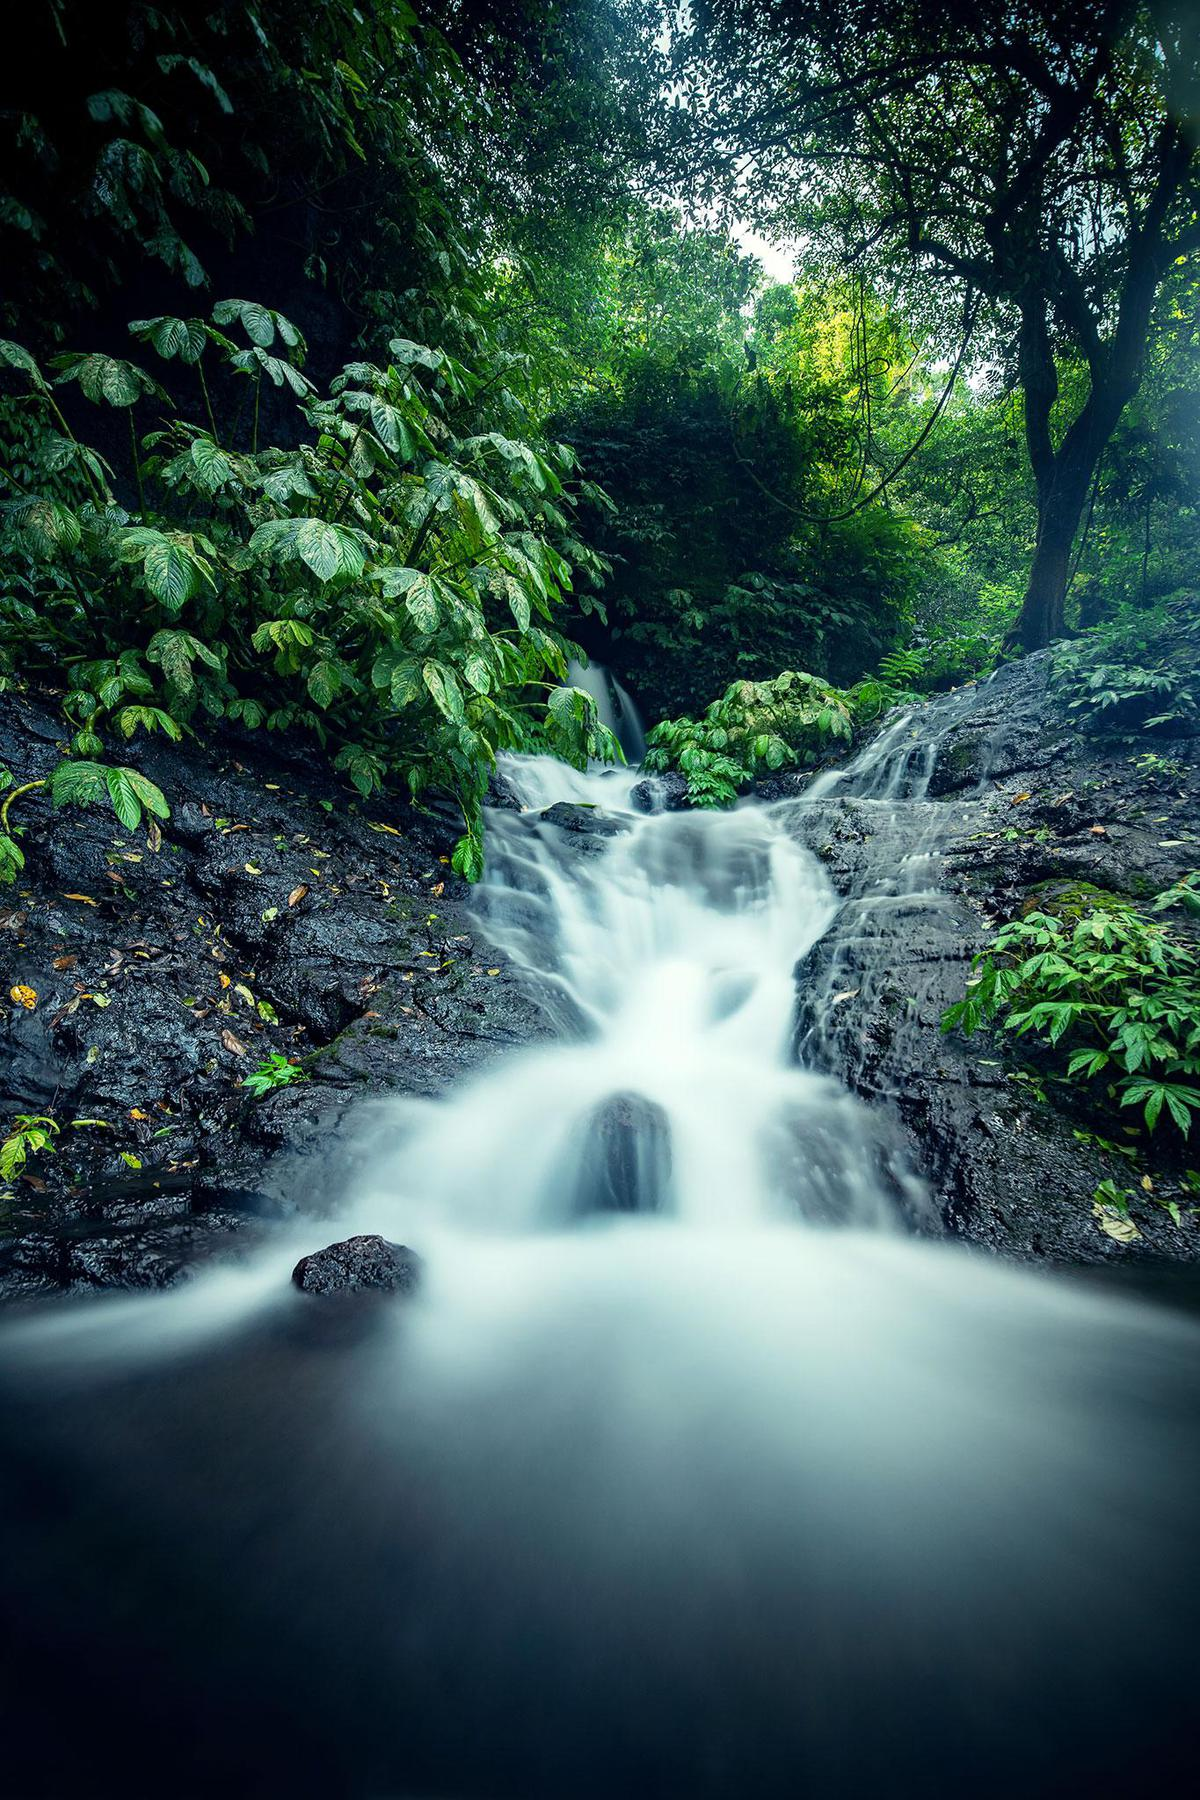 Image of Body of water, Water resources, Nature, Natural landscape, Waterfall, Water etc.